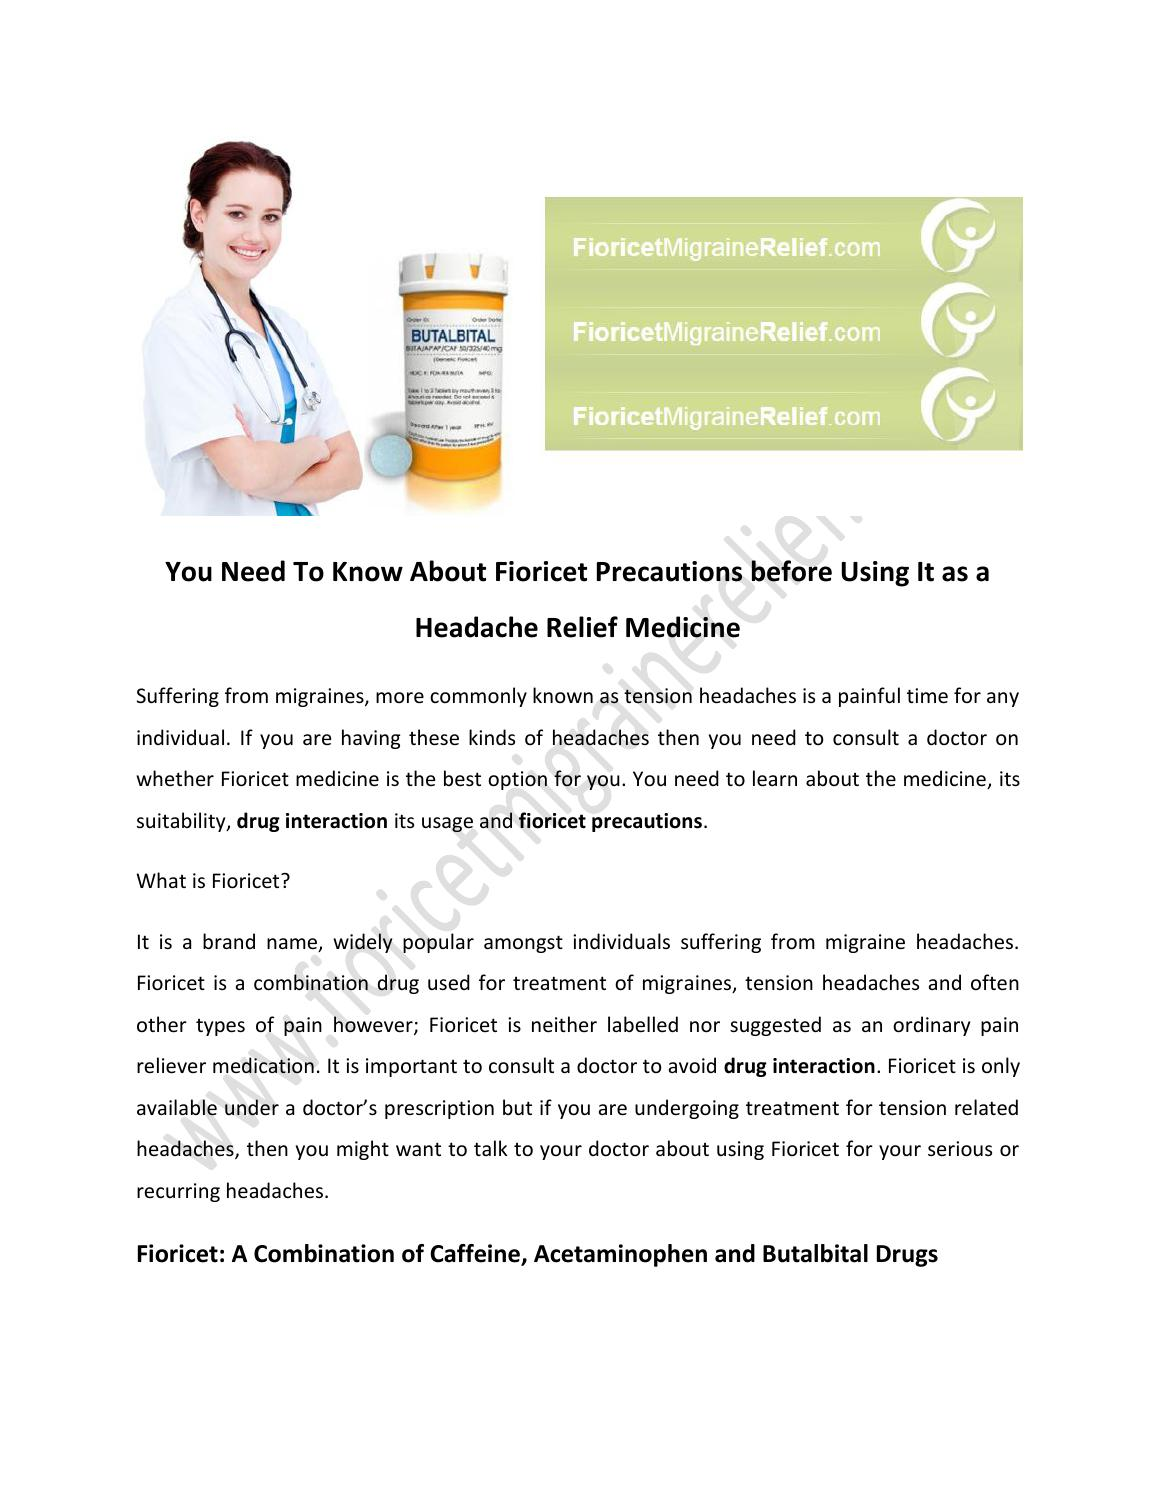 You Need To Know About Fioricet Precautions before Using It